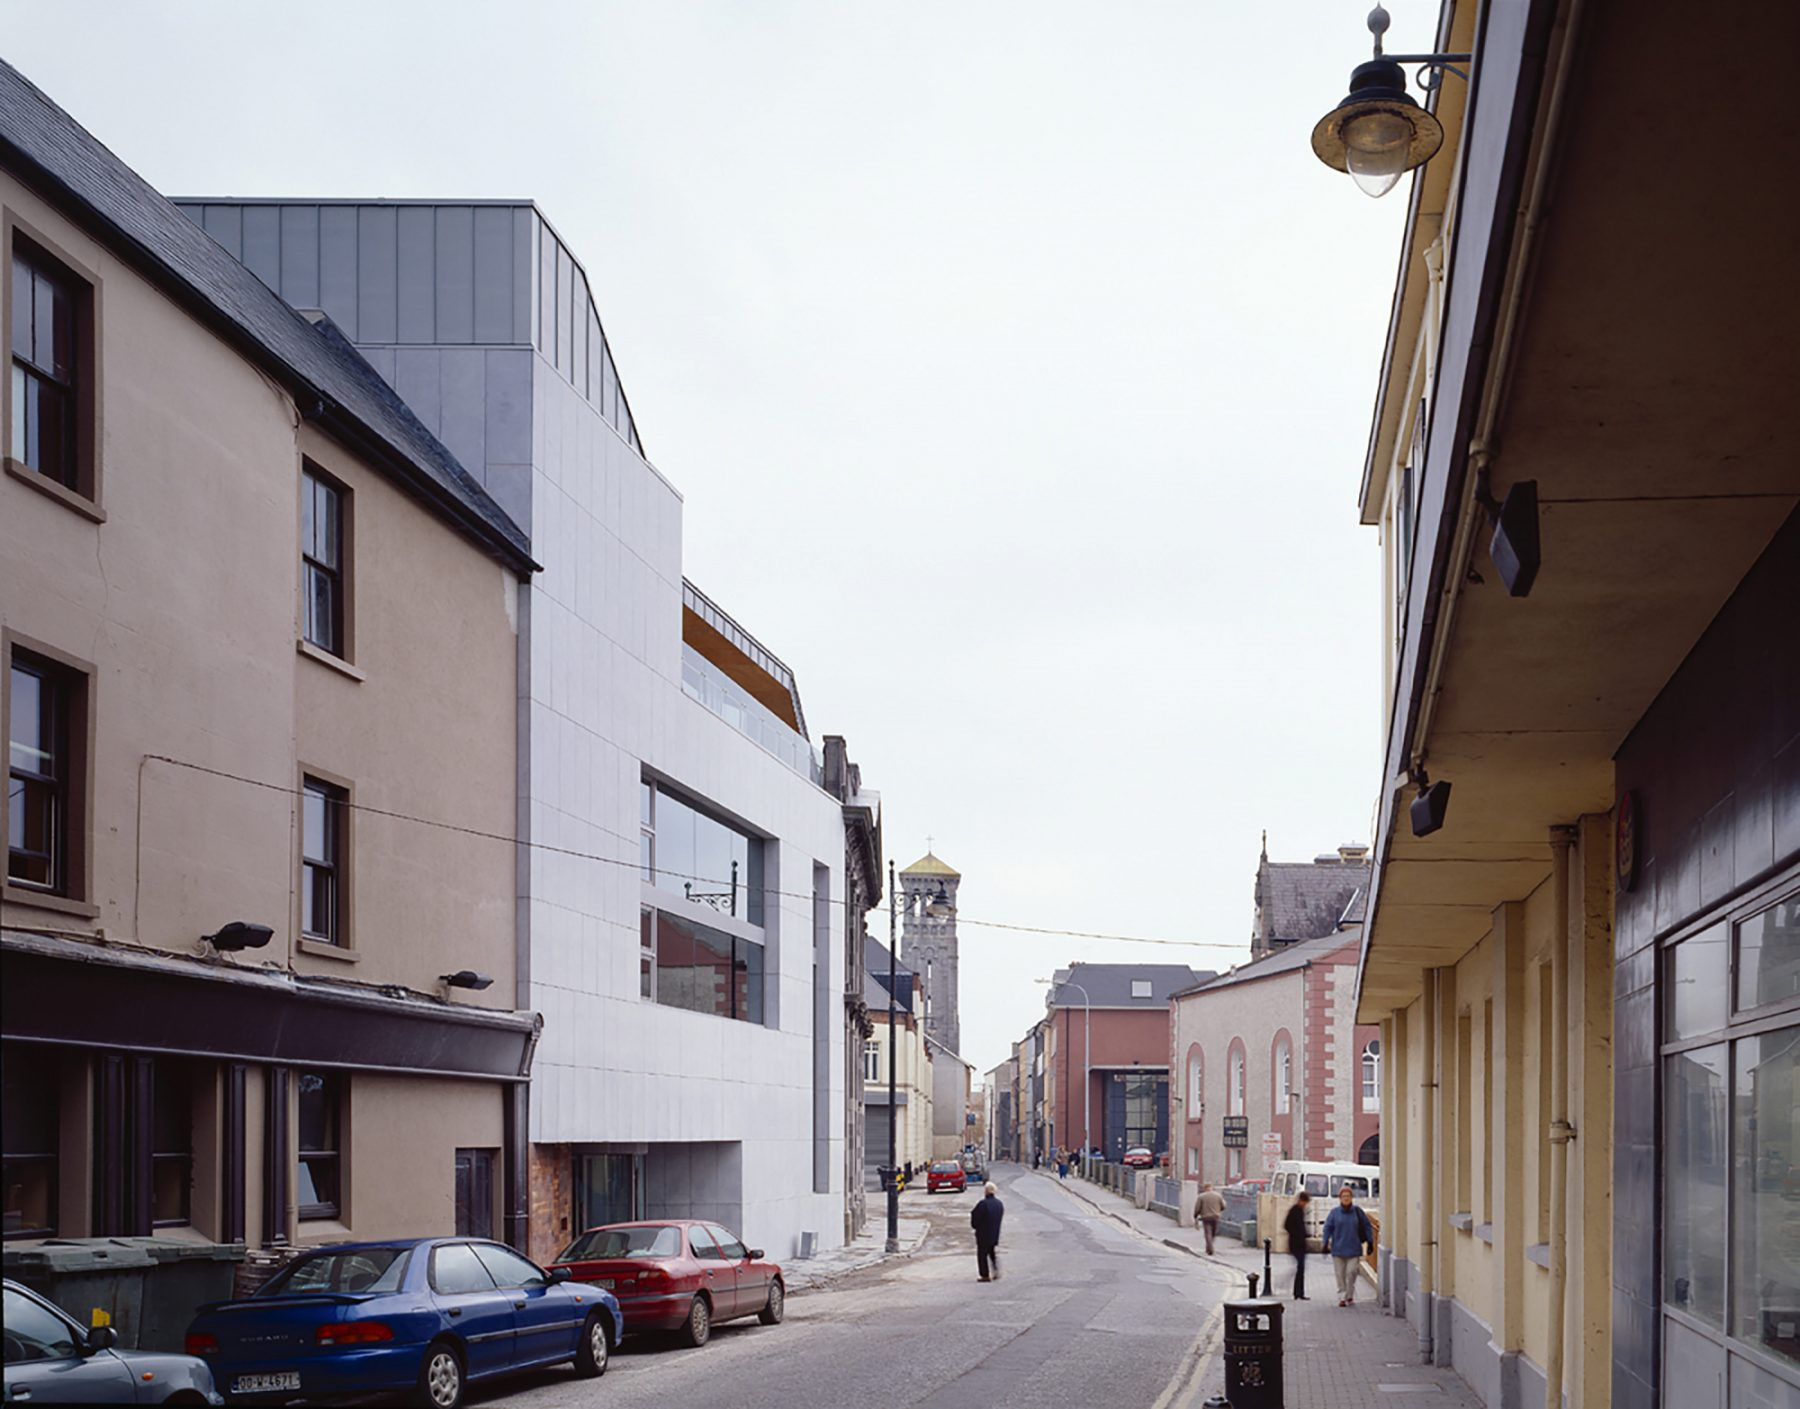 Niall McCullough: The Art of the Possible - Irish Architecture in Transit   A short text by the architect Niall McCullough on interventional architecture.